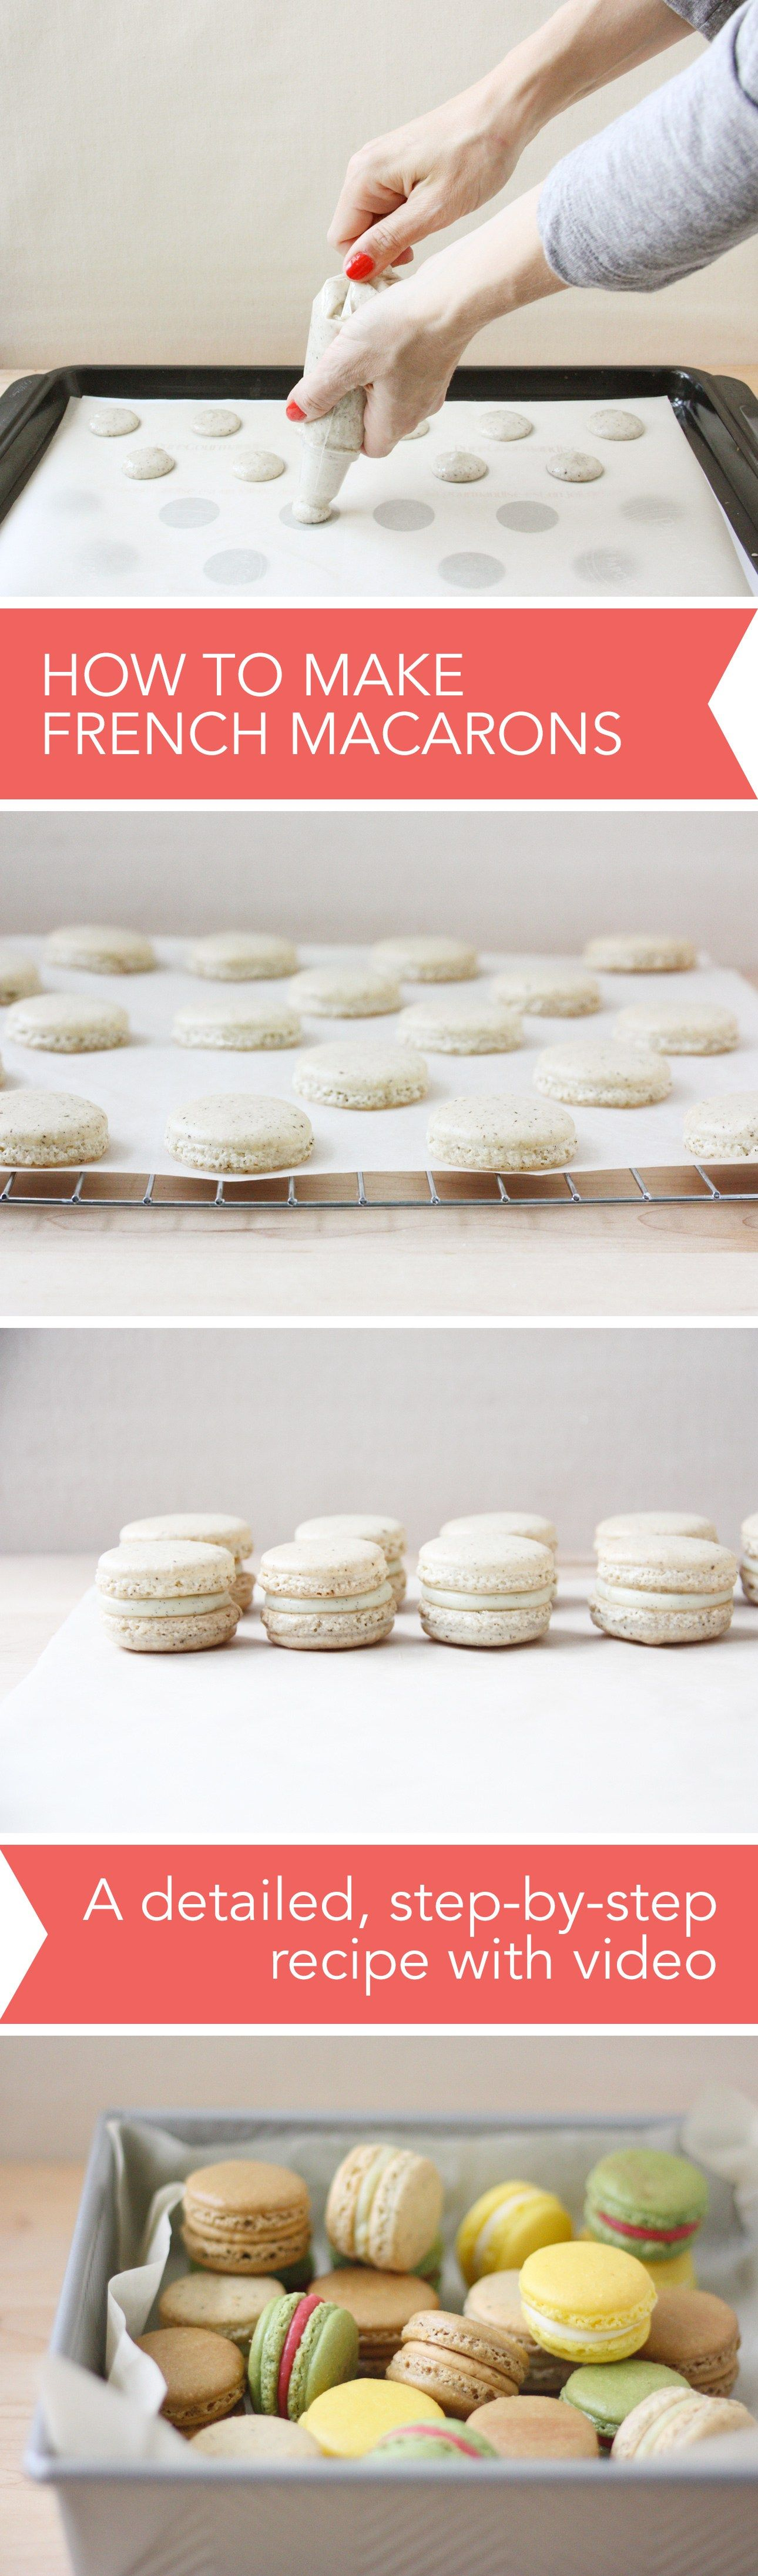 How To Make French Macarons A Detailed Step By Recipe With Video FoodNouveau